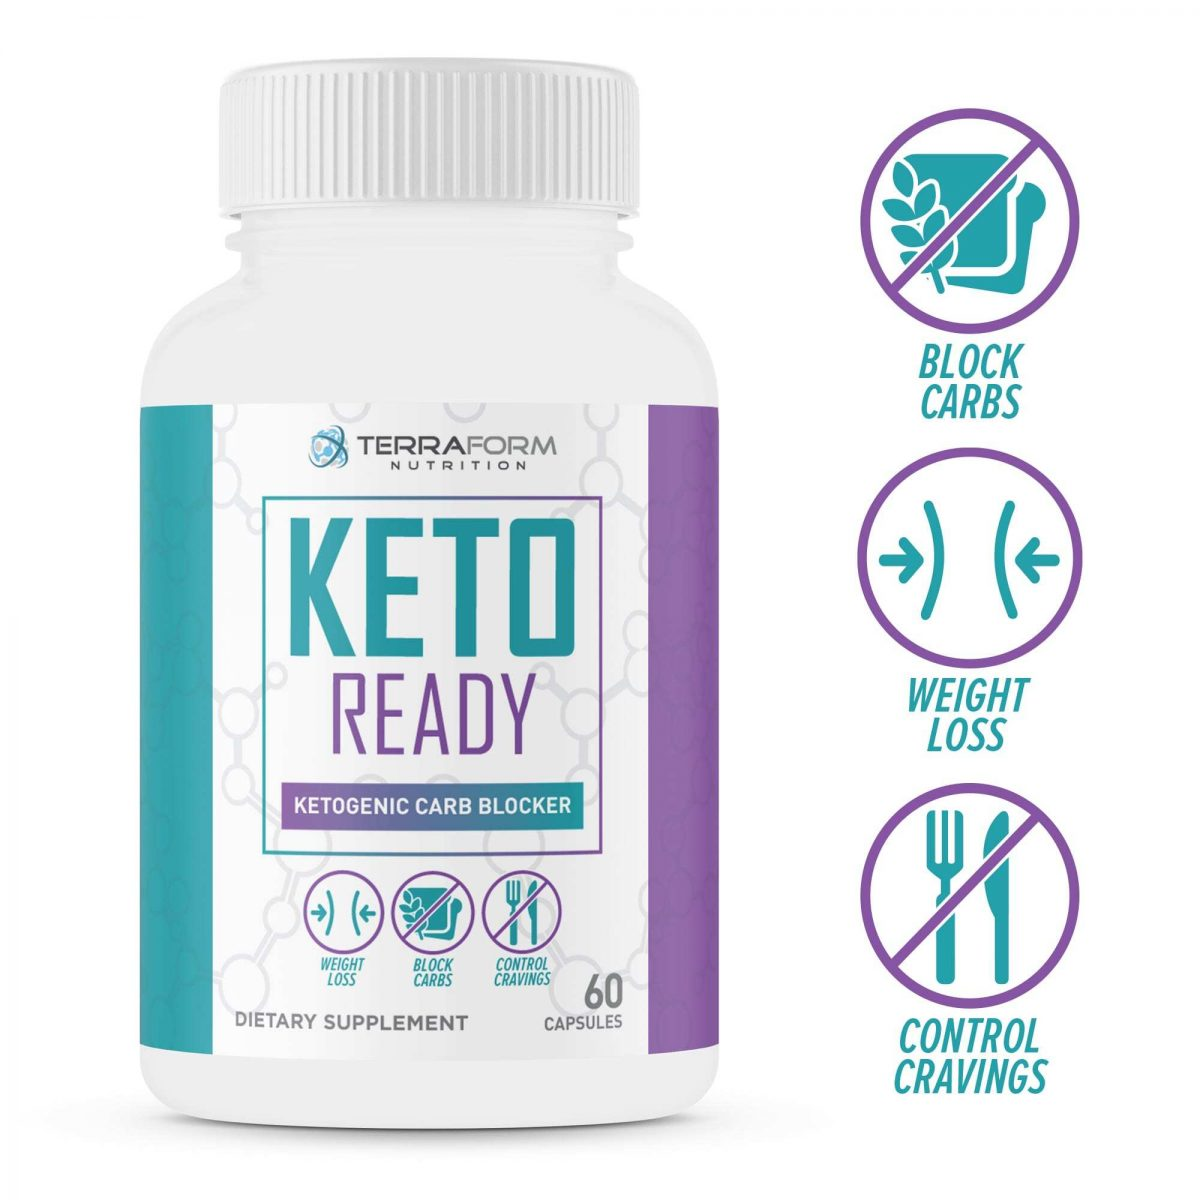 Keto Ready - Max Strength Keto Carb Blocker 1200mg – 60 Capsules - TerraForm Nutrition-0